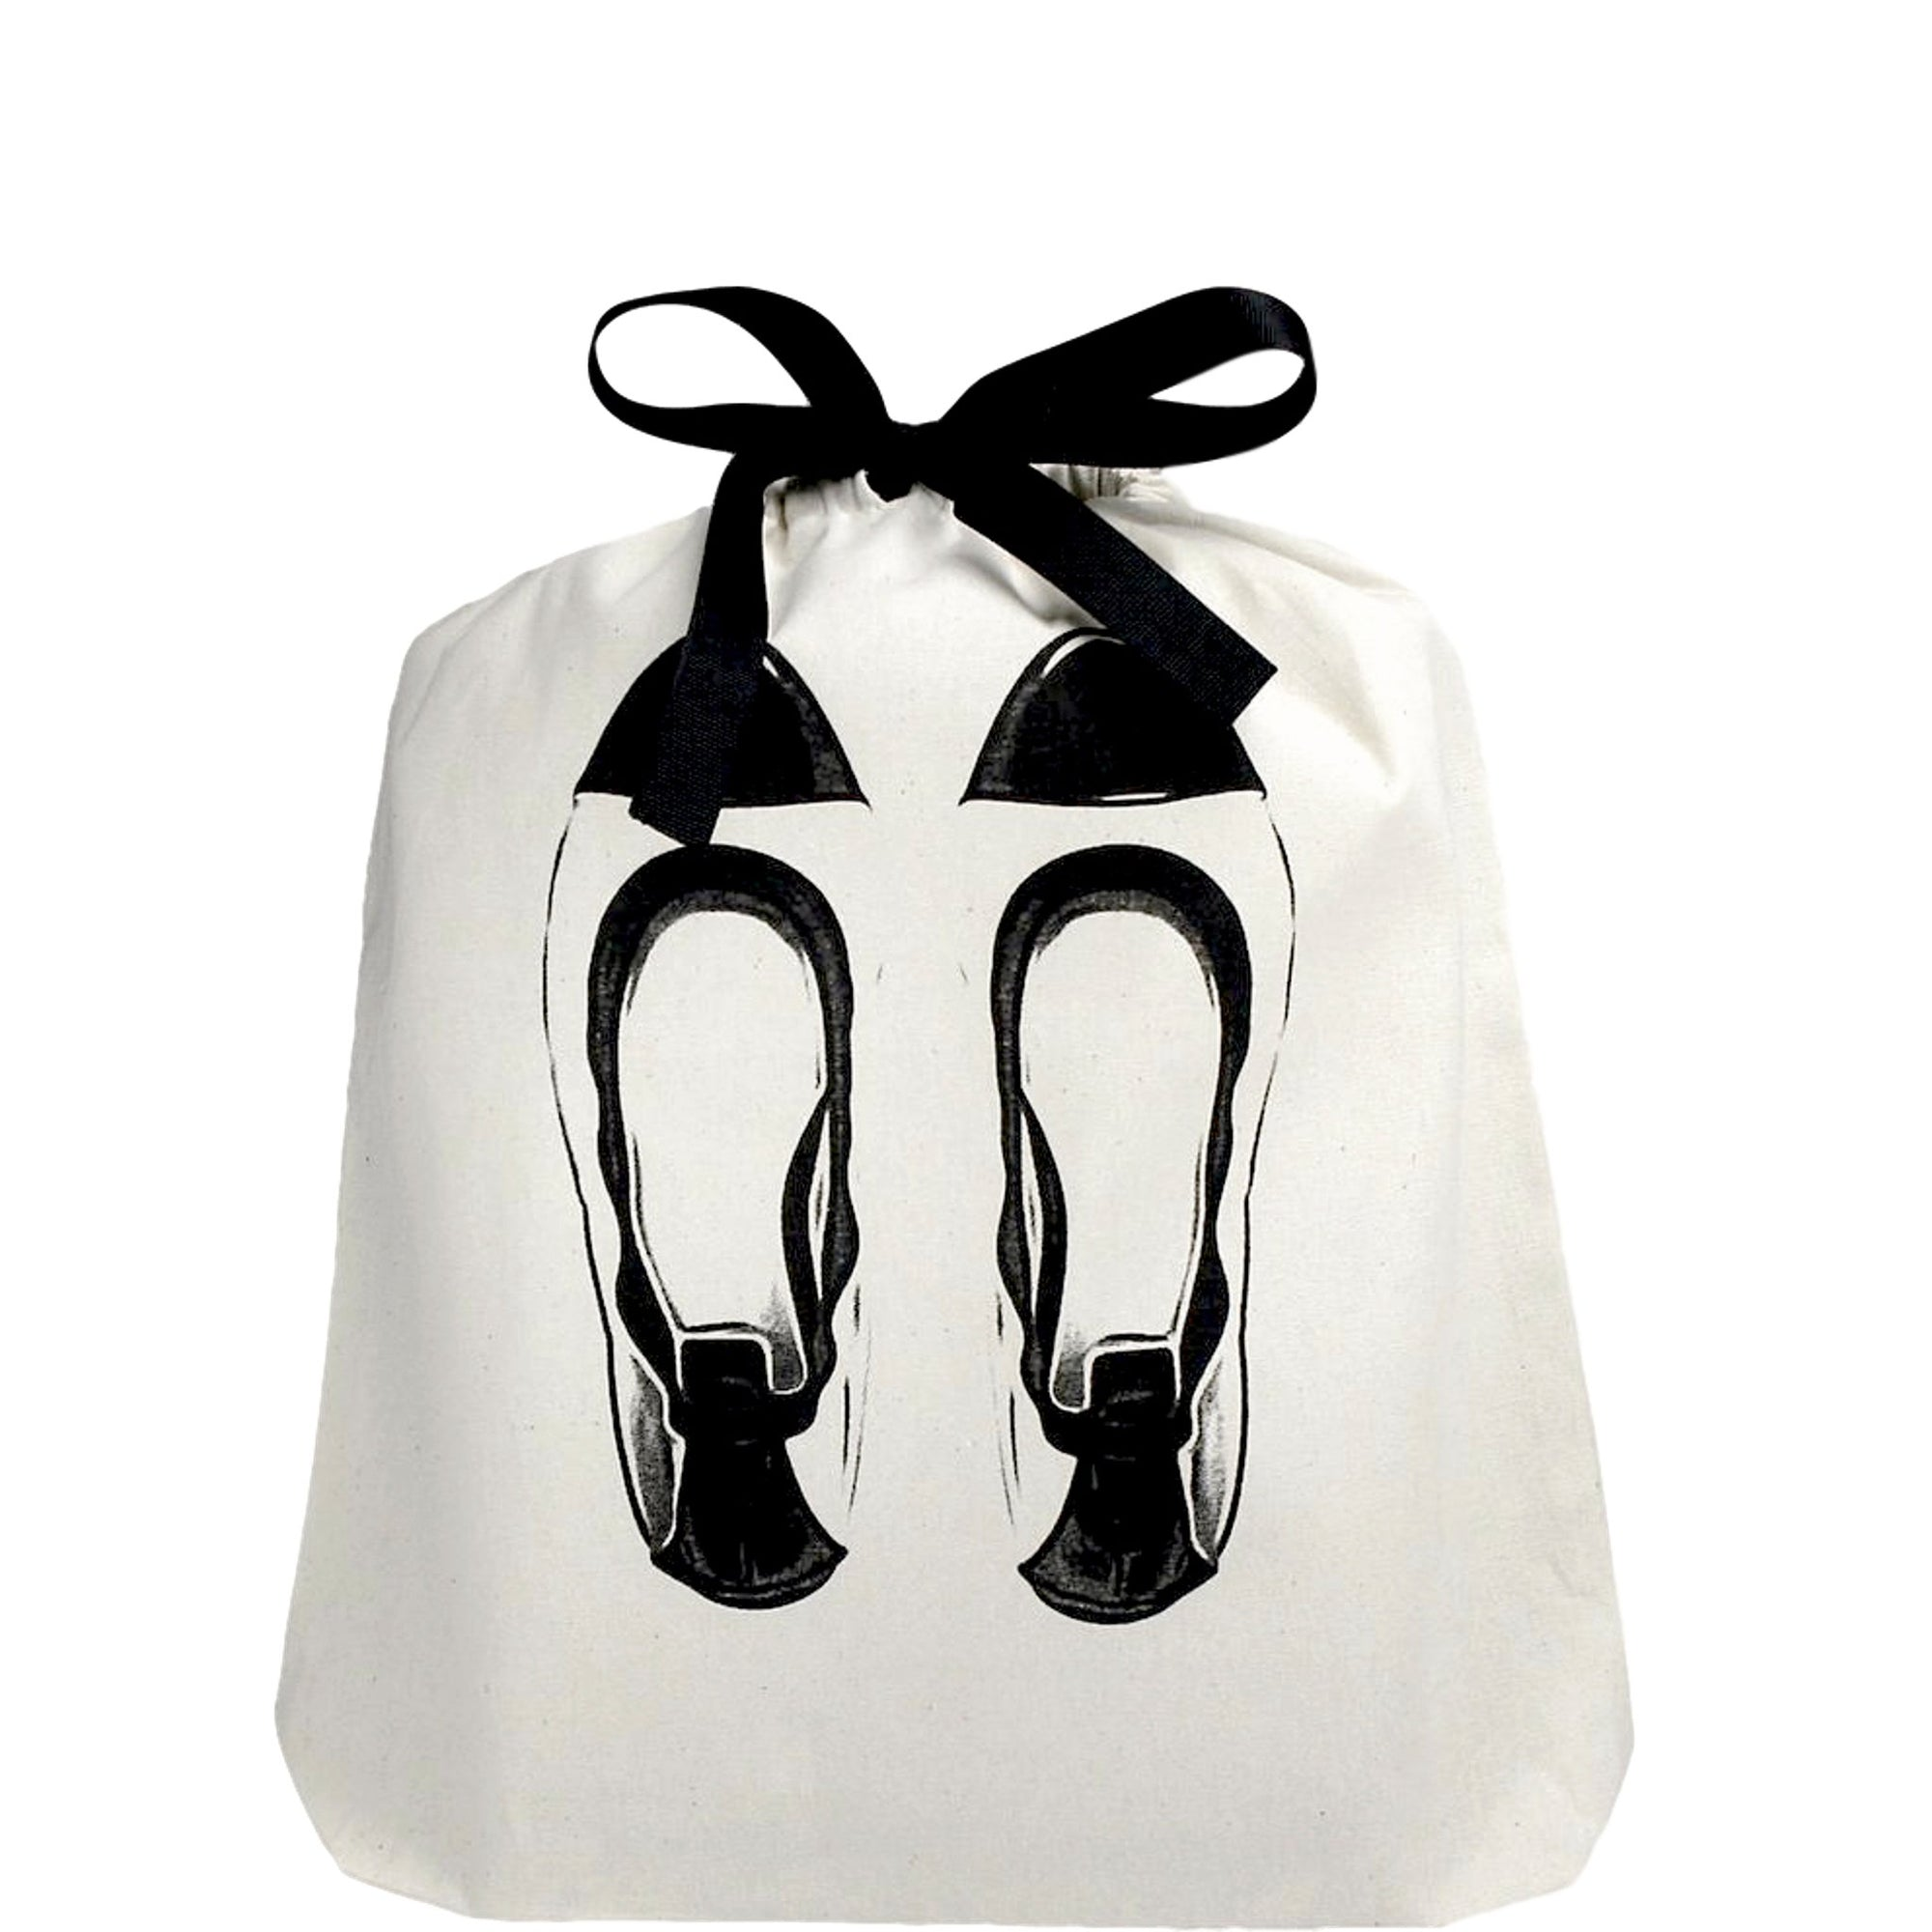 Organizing shoe bag in white with Ballet flats printed on the front.